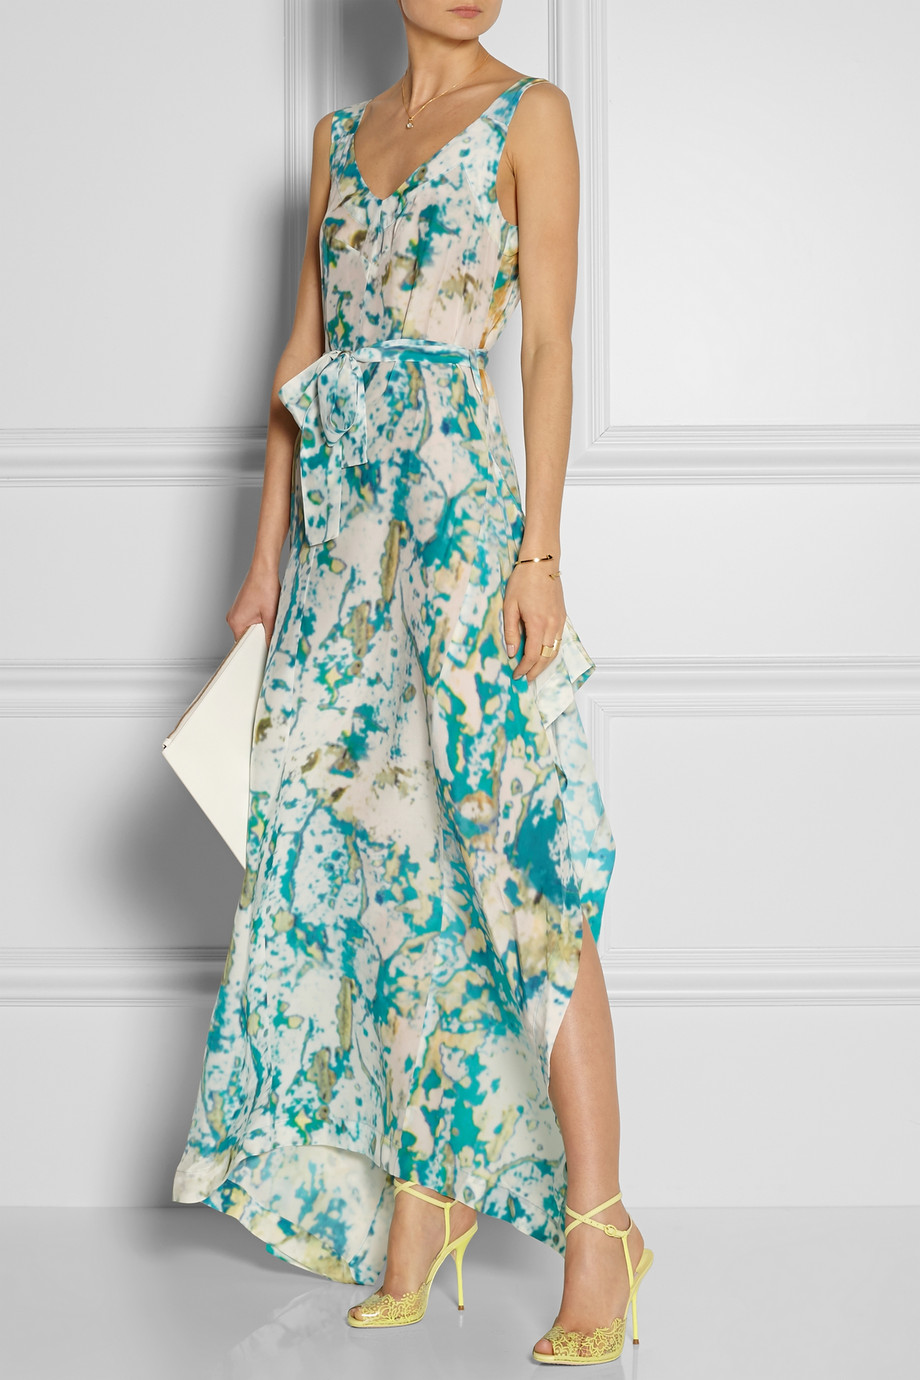 What to wear to a daytime summer wedding lauren messiah for Summer dresses for wedding